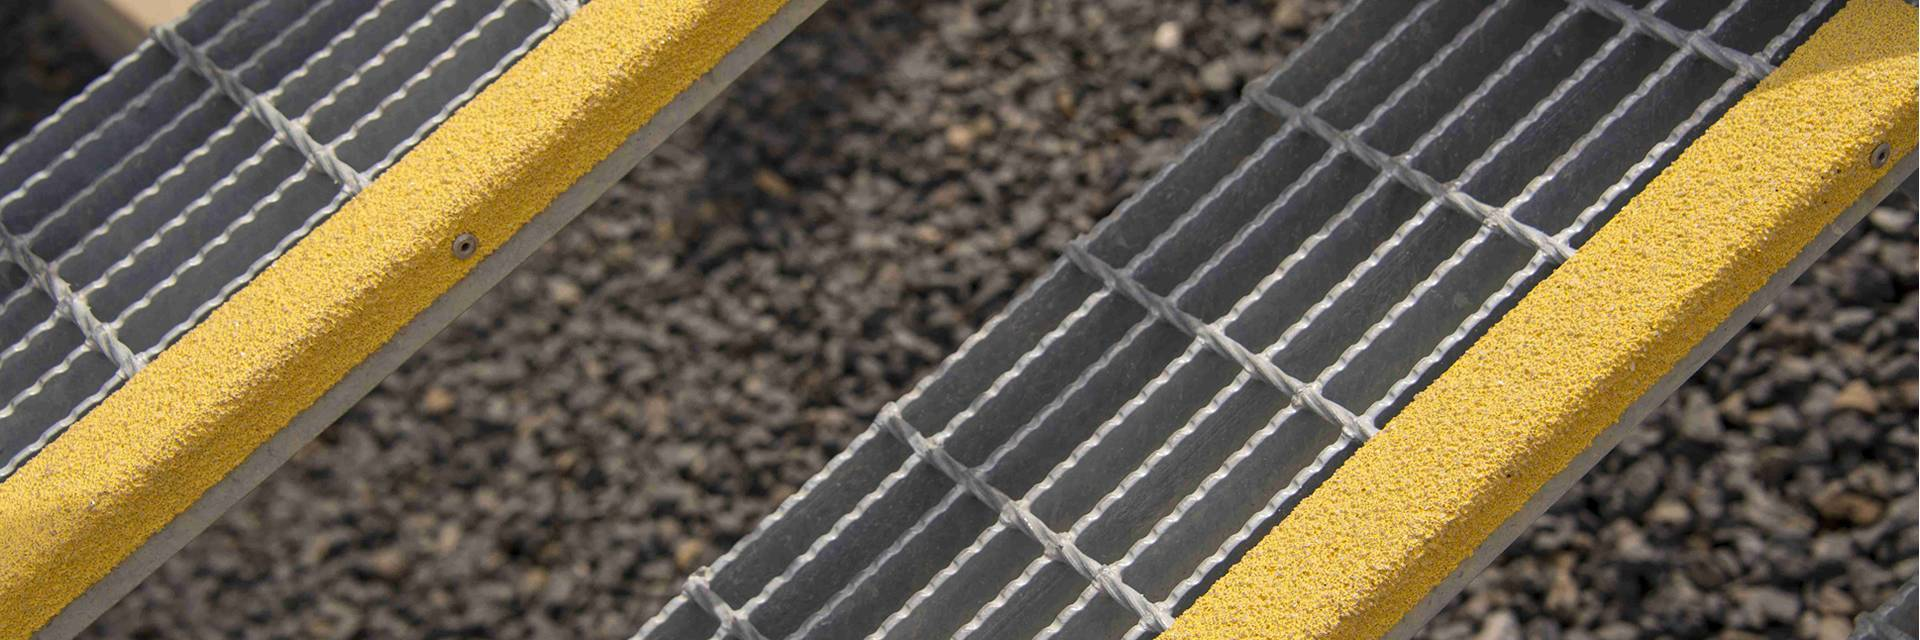 Serrated grid grating with anti-slip nosing are installed as stair treads.